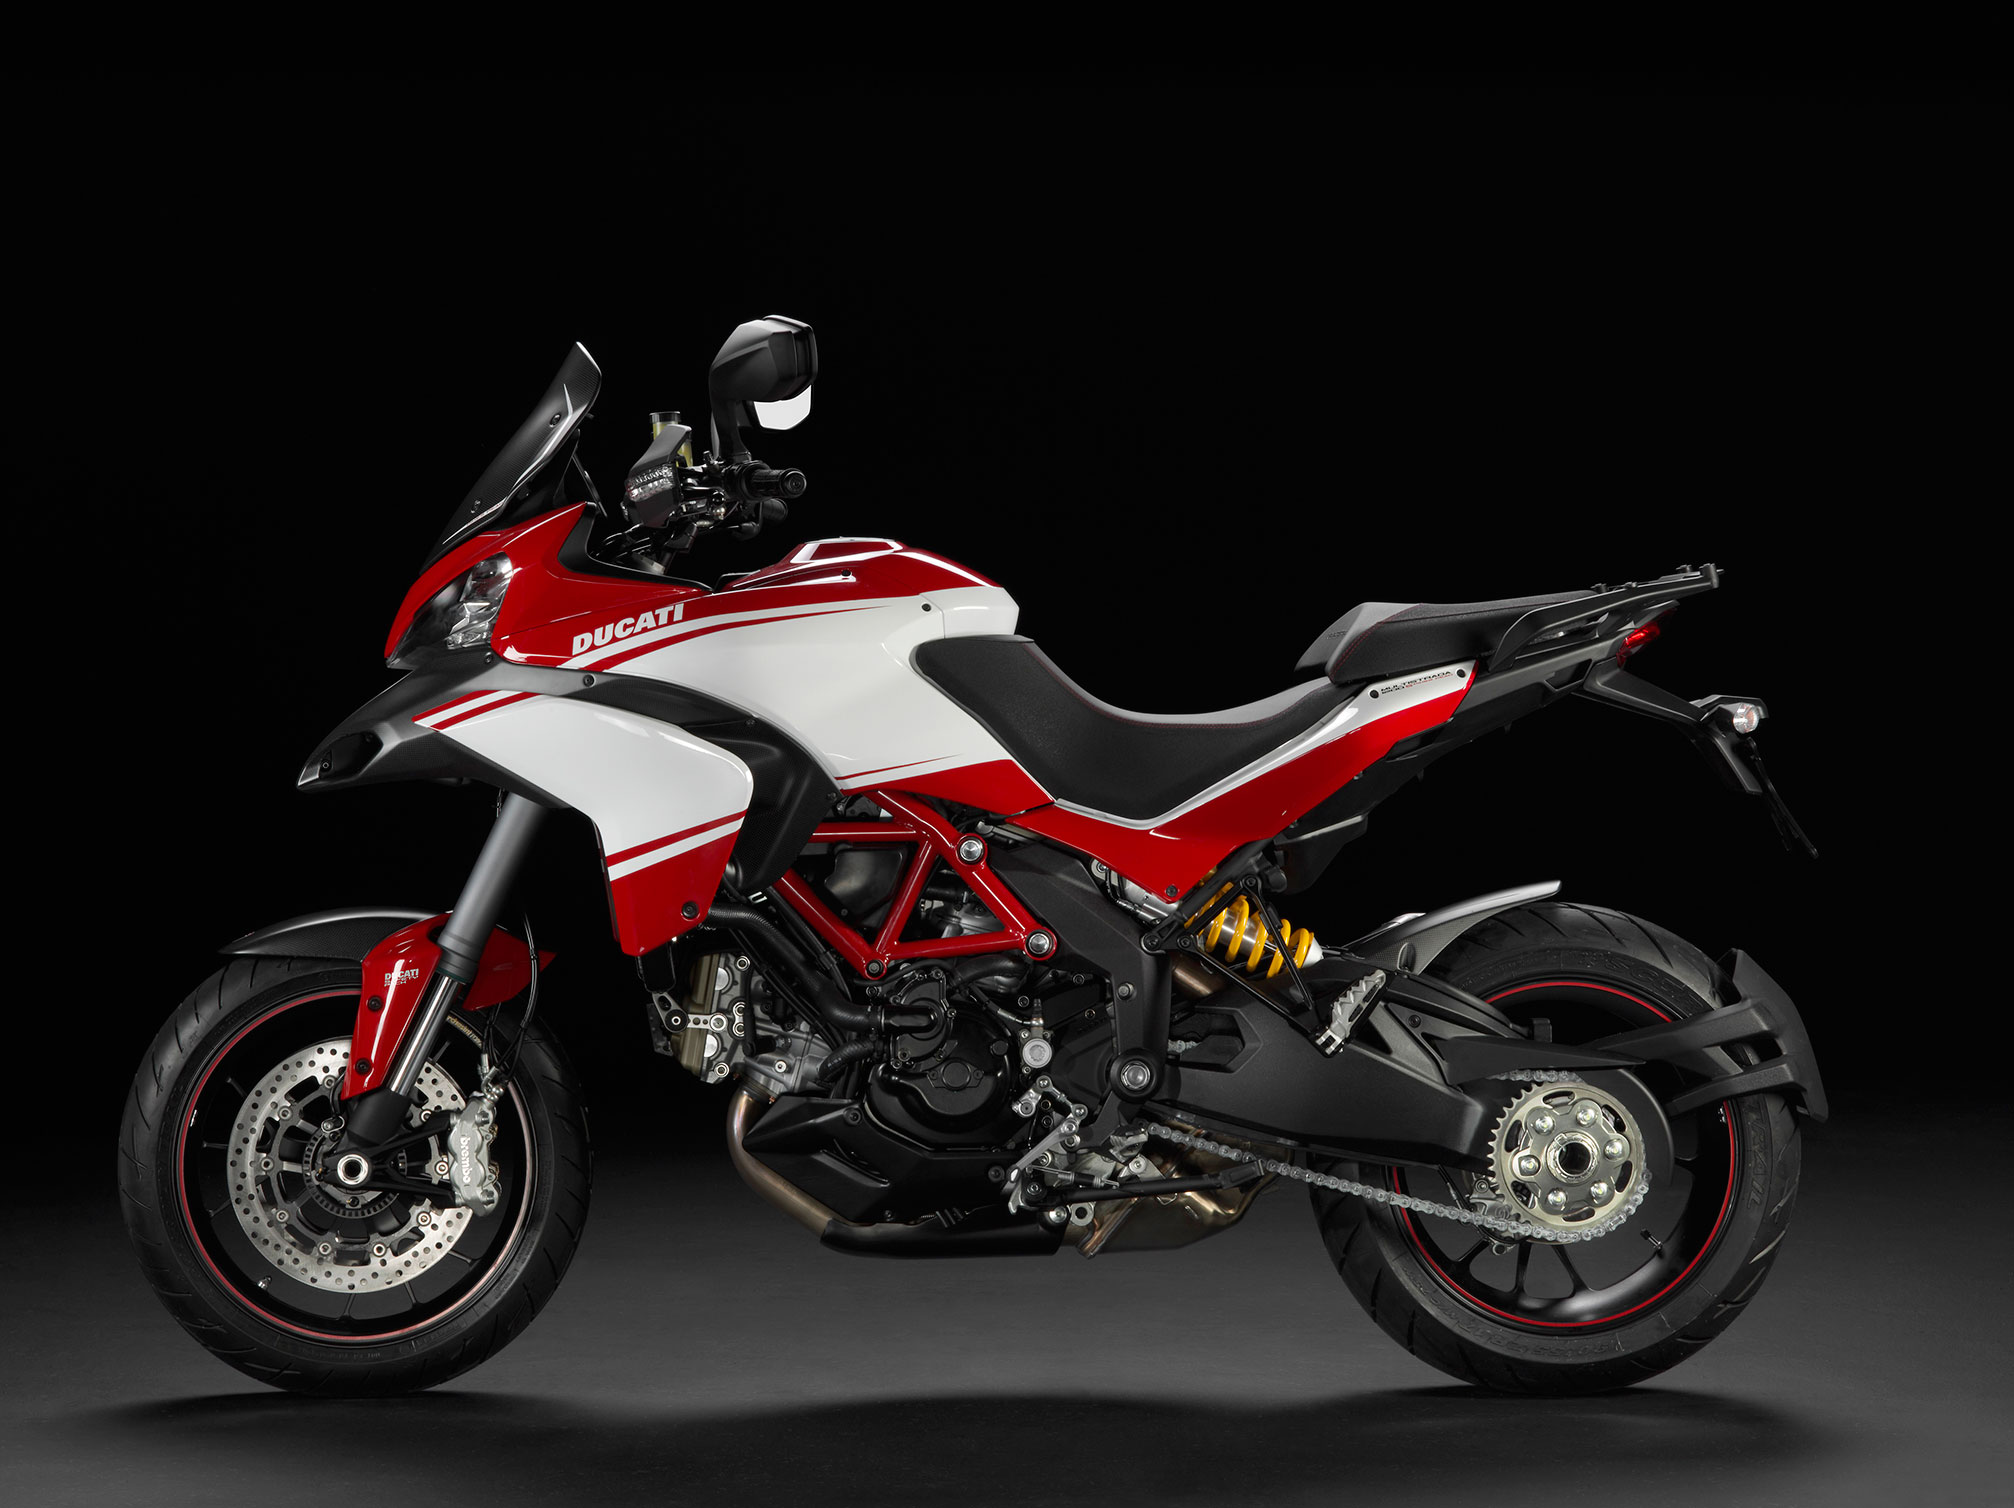 Ducati Multistrada 1200 S Pikes Peak Edition 2013 images #80014